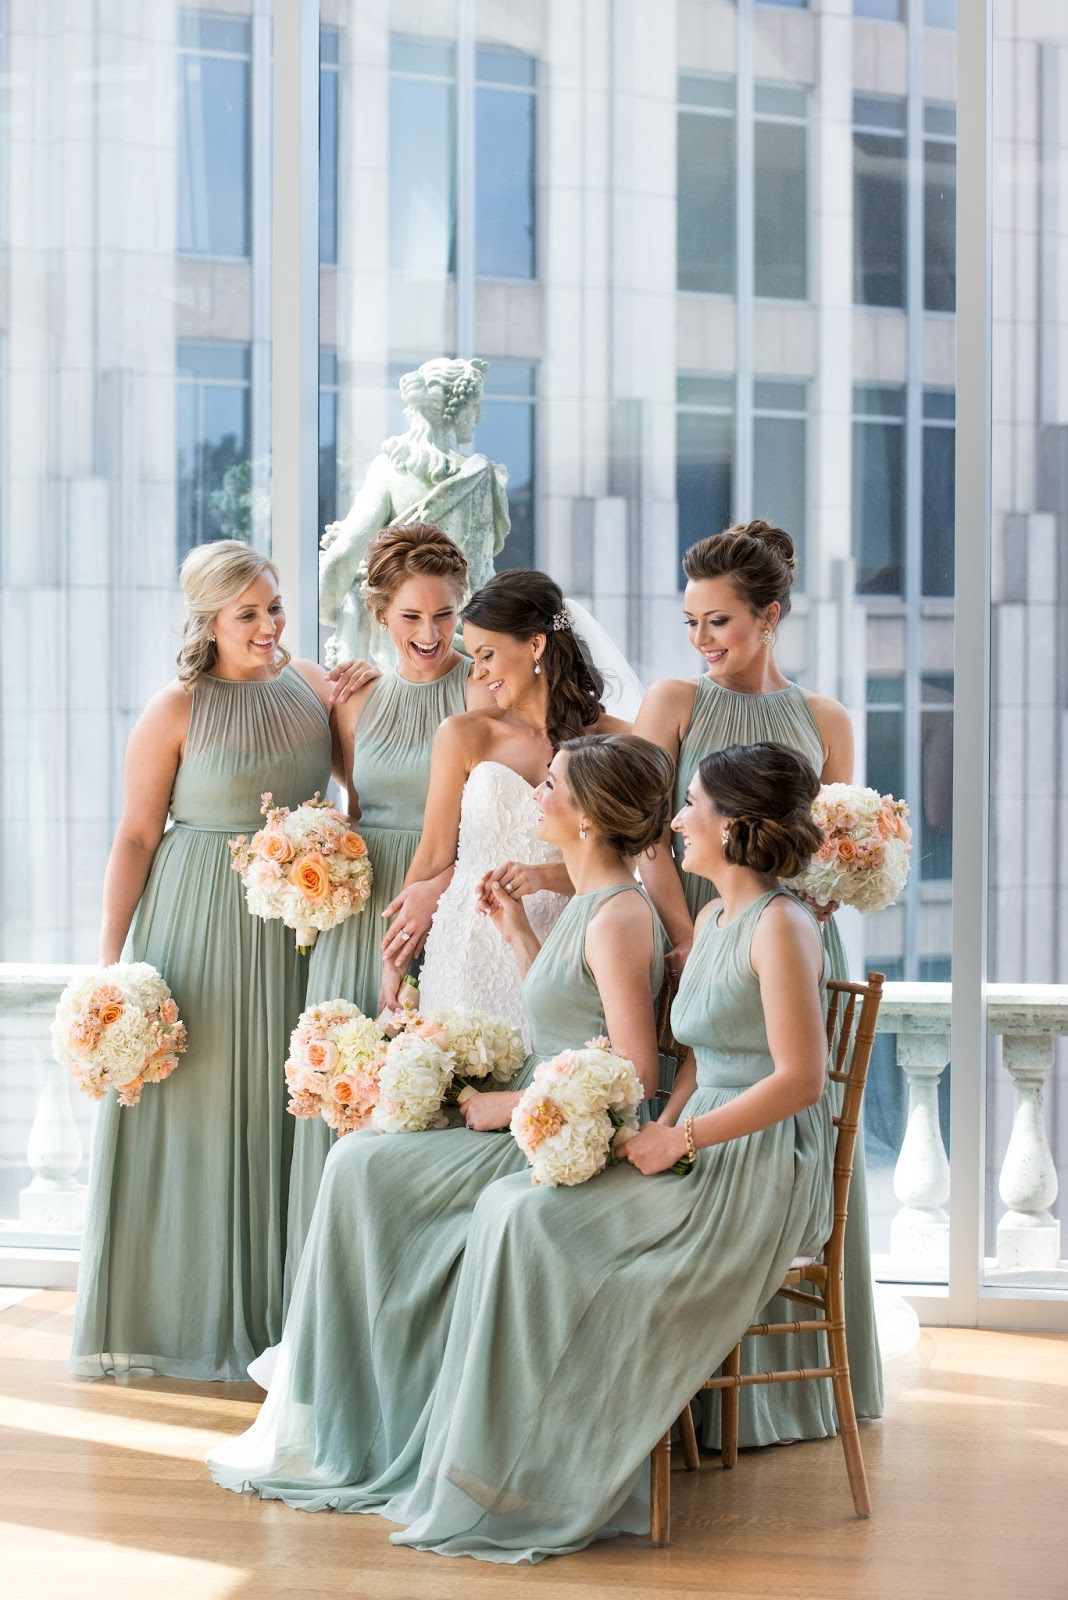 Our wedding day wedding party medicine manicures jew bridesmaid dresses dusty shale ombrellifo Images